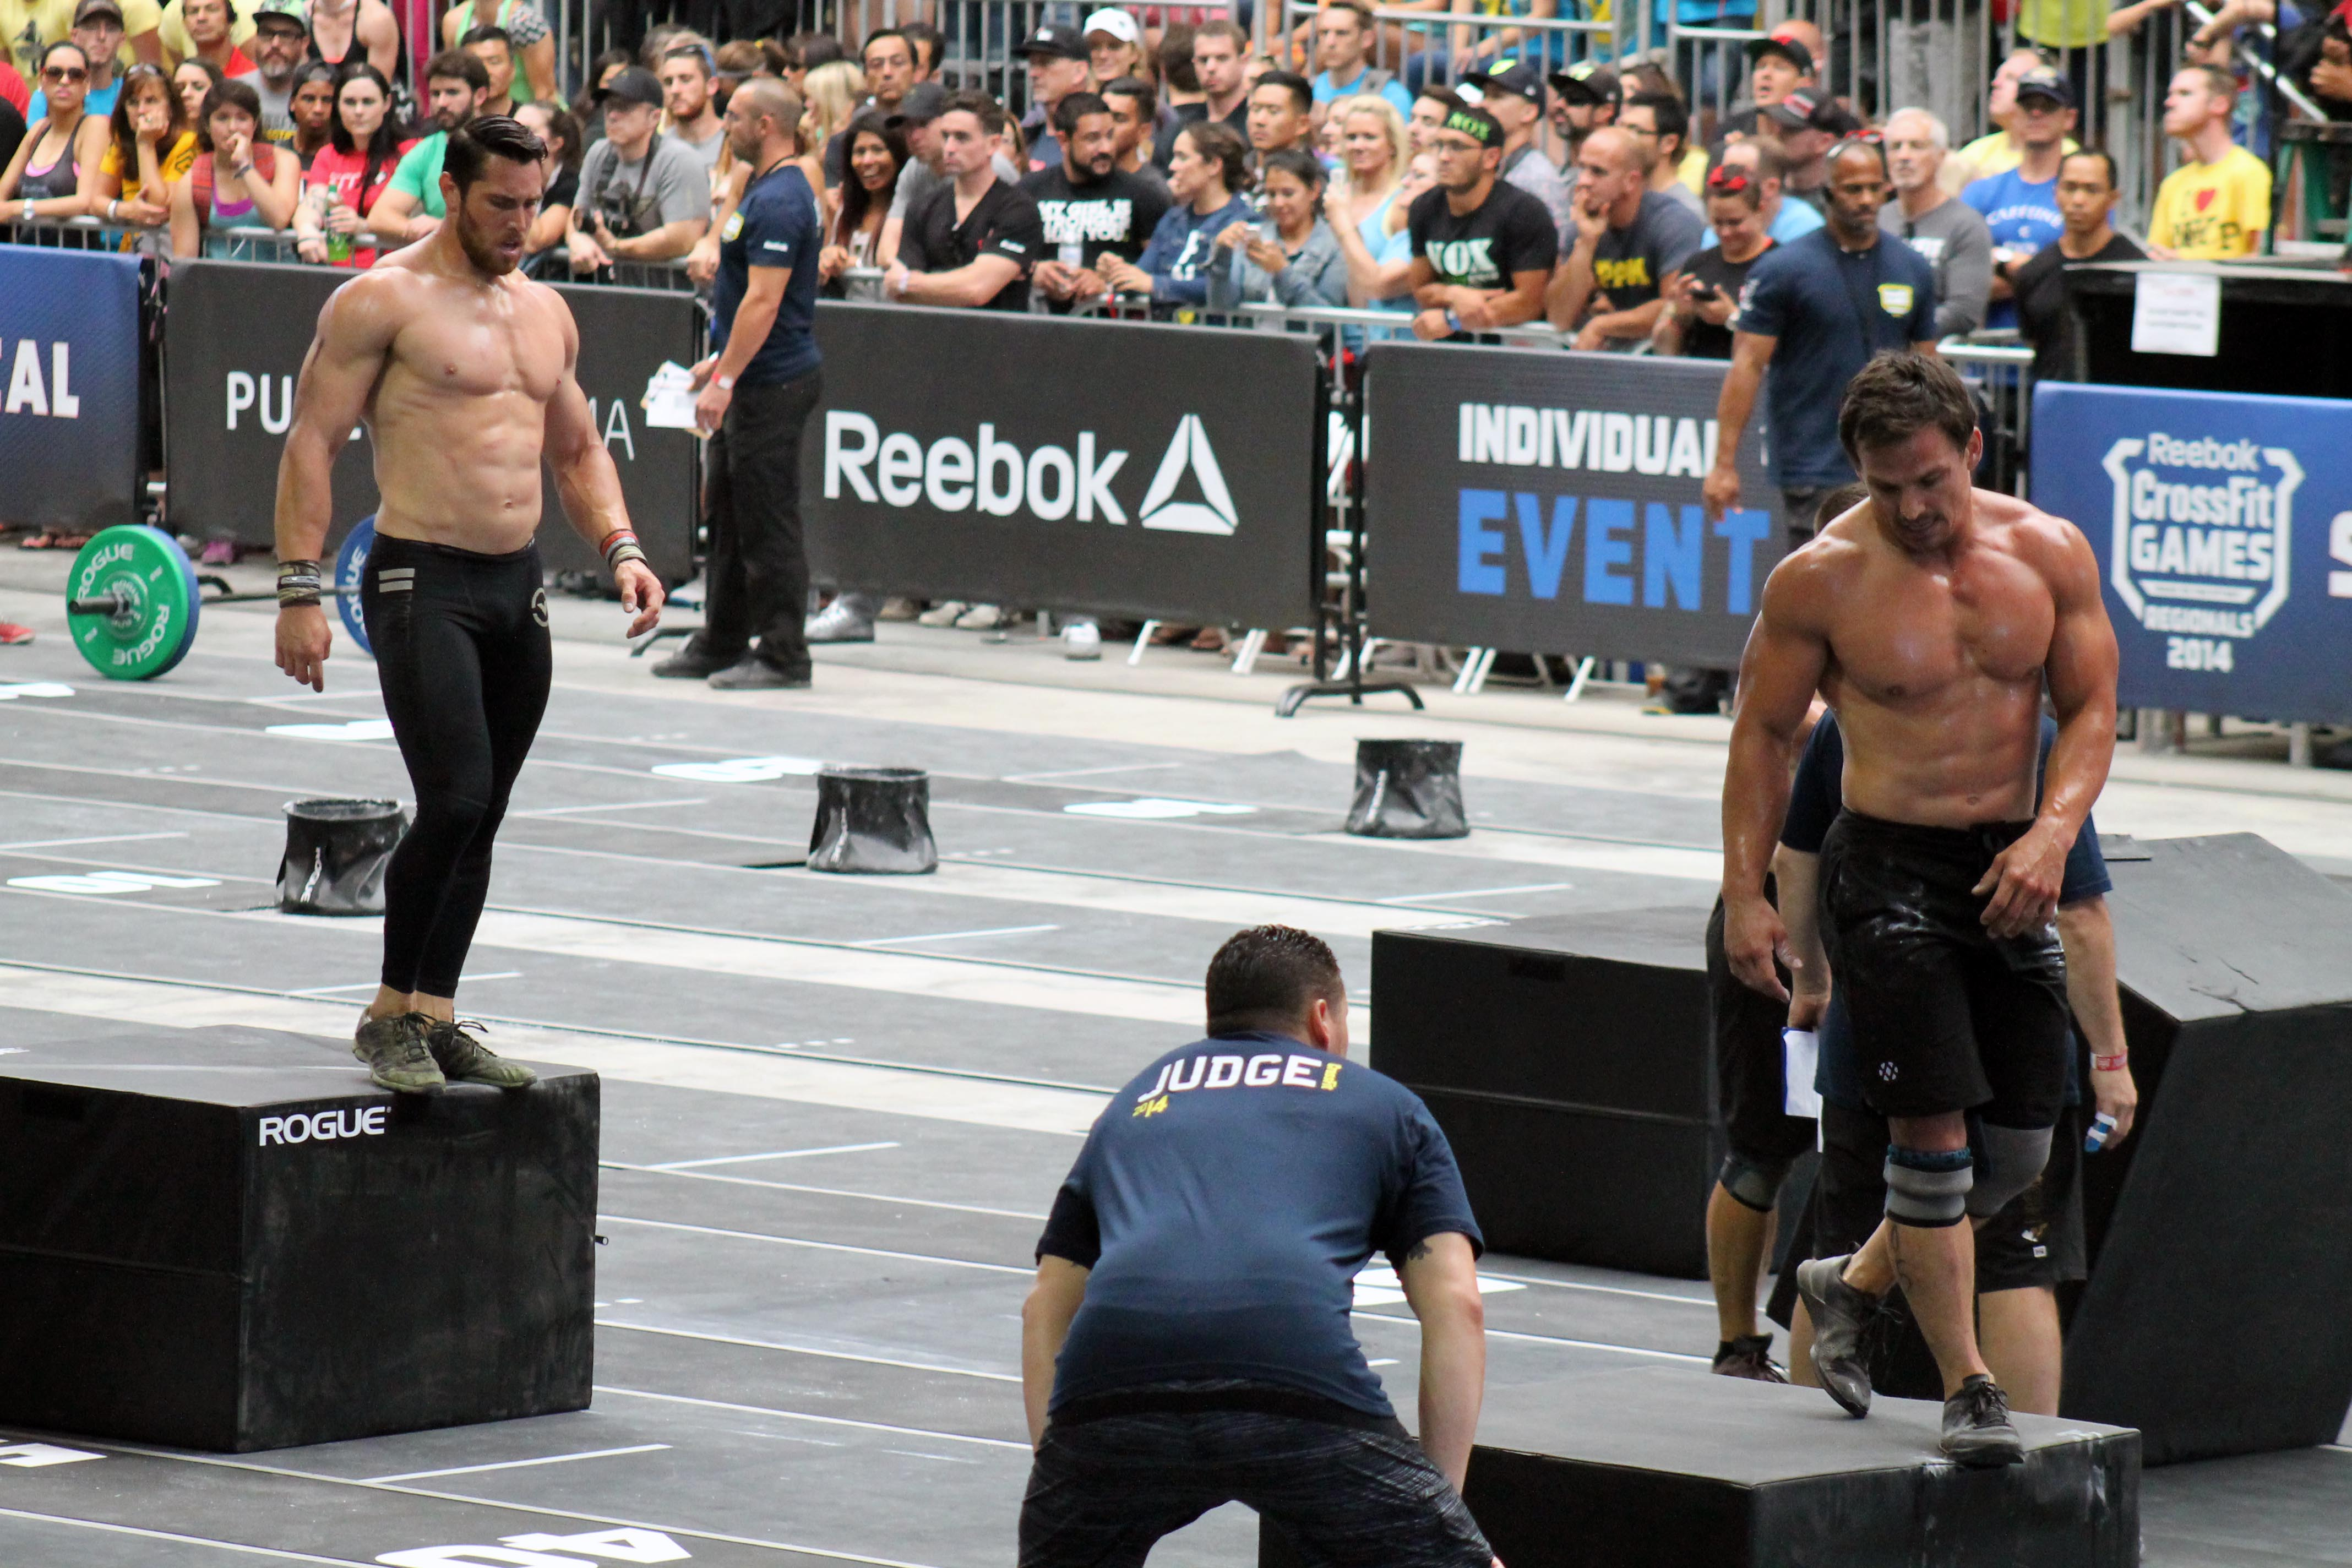 South-Coast-CrossFit-2014-So-Cal-Regional-